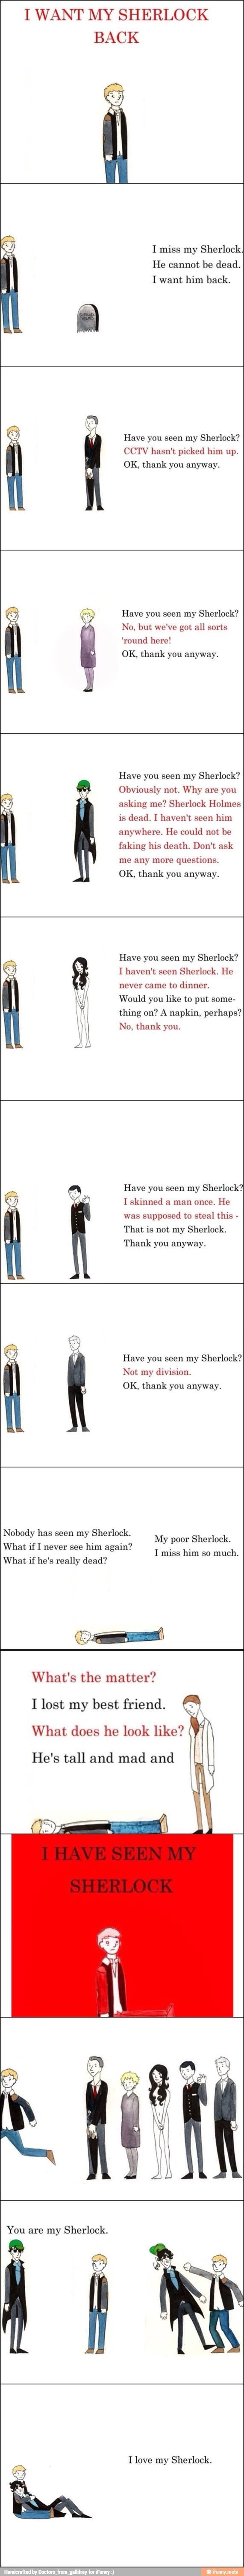 Have you seen my Sherlock? Parody of I Want My Hat Back